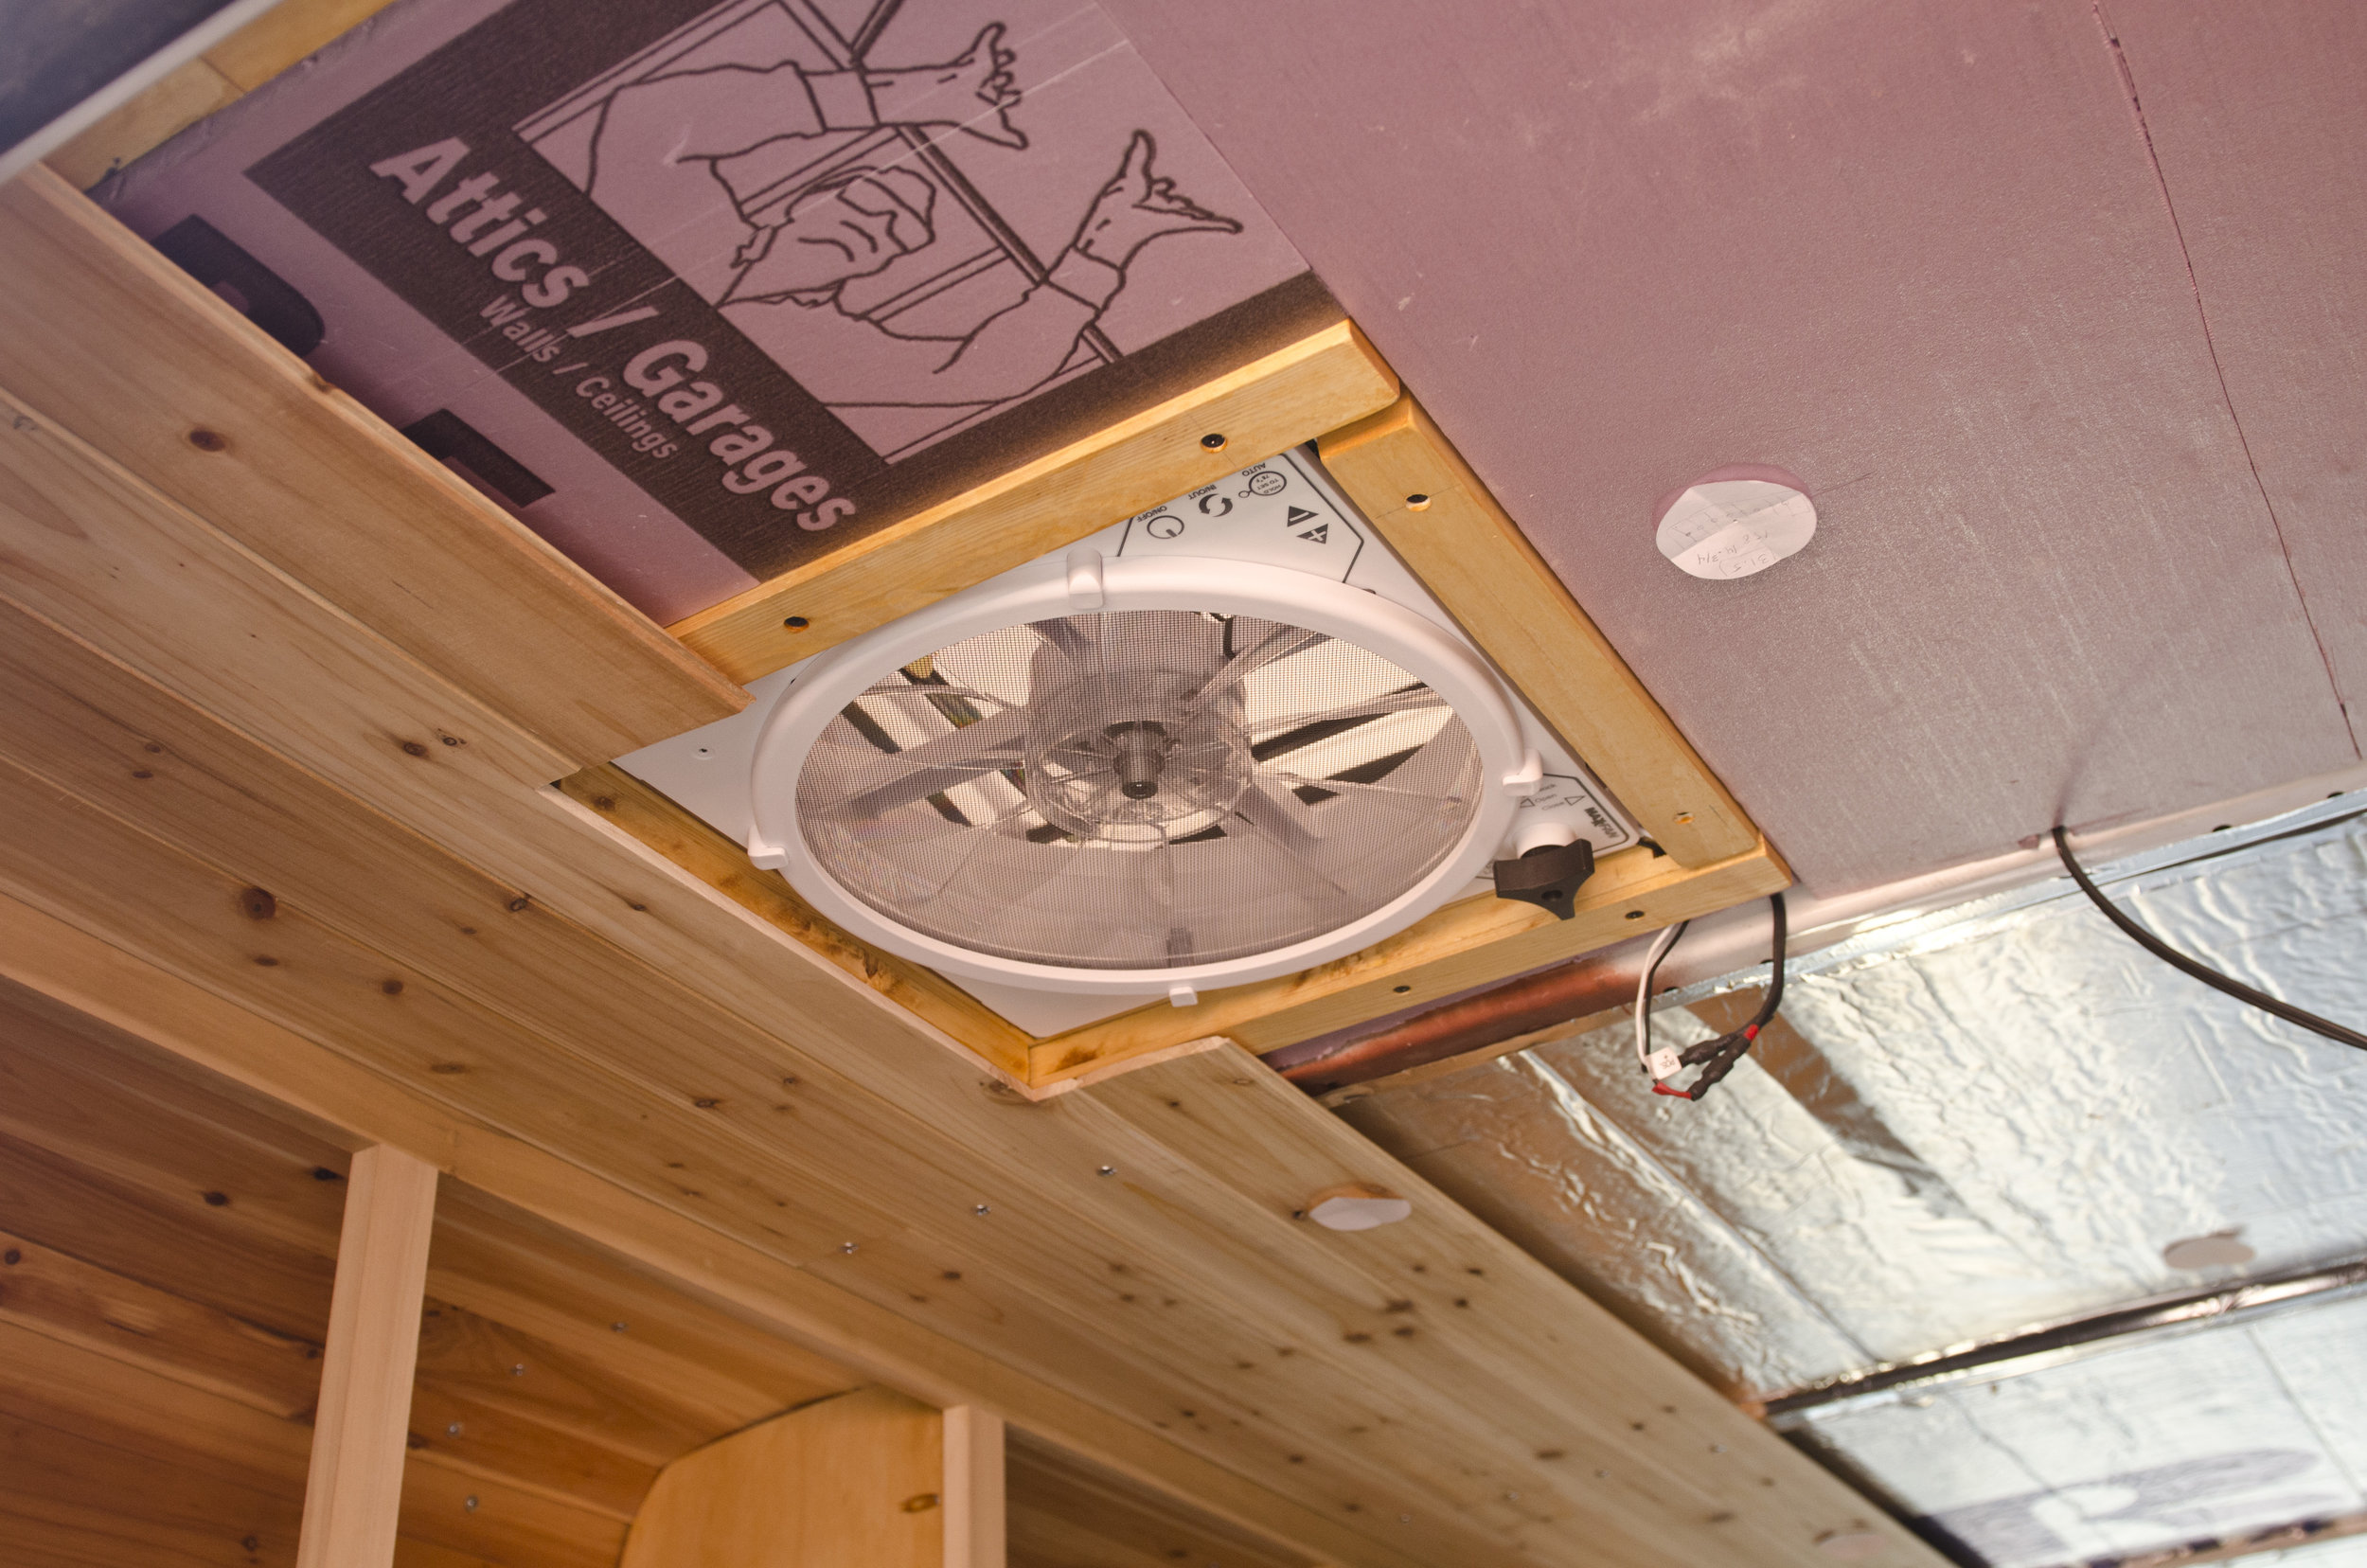 Installing our Maxx Fan over the bed + paneling the ceiling